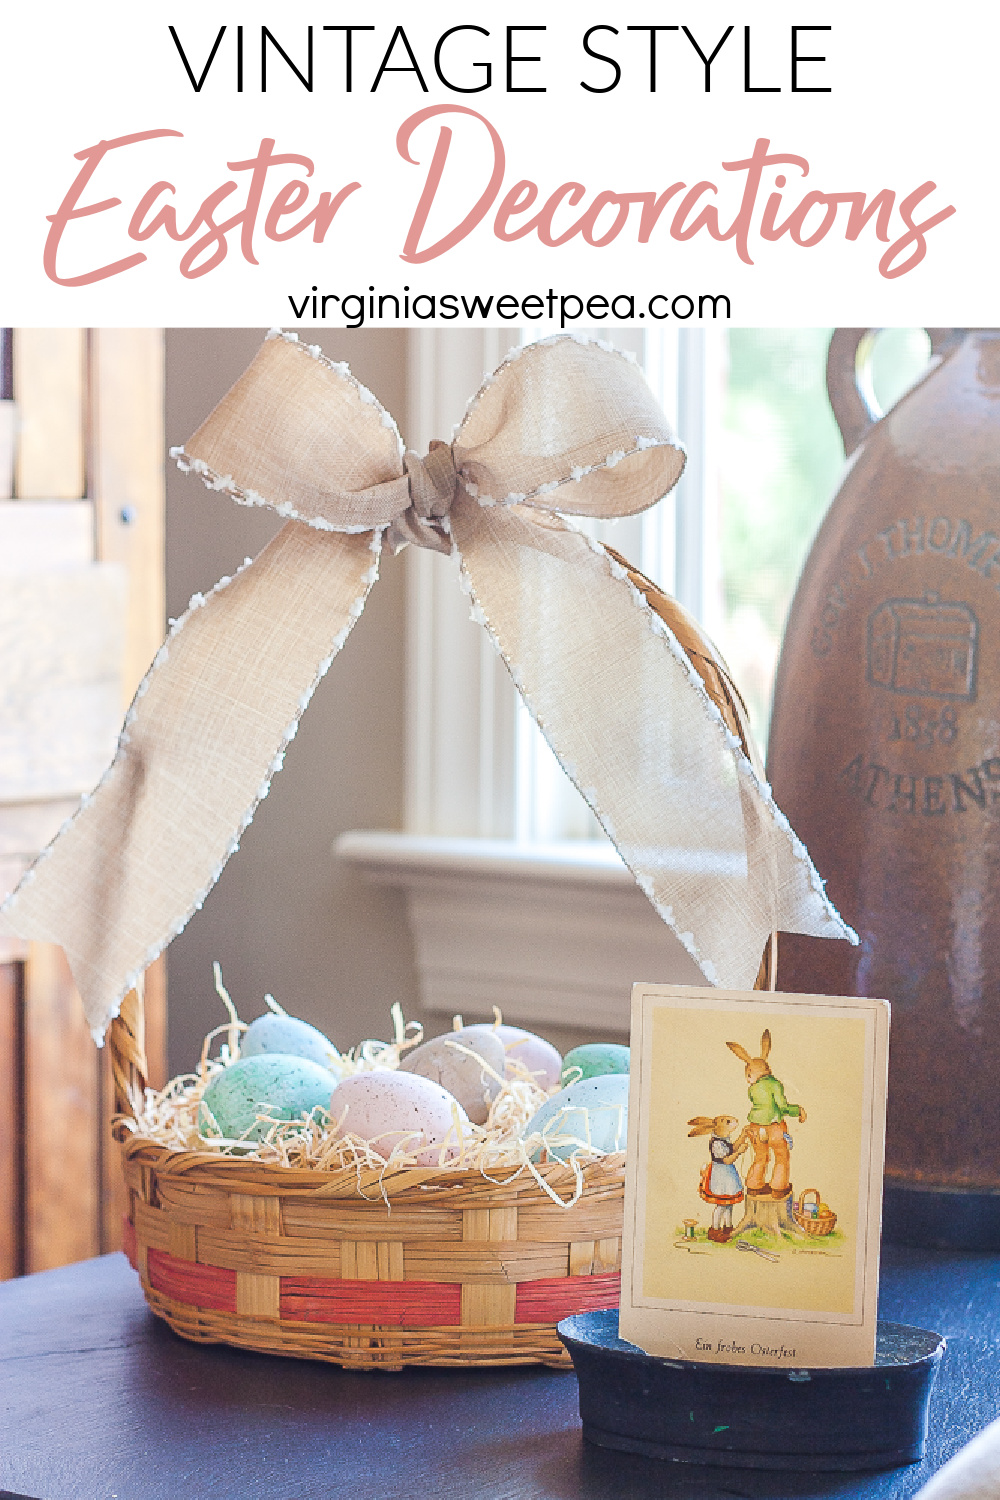 See a home decorated for Easter with vintage style.  Get ideas for creating displays to decorate your home for Easter. via @spaula